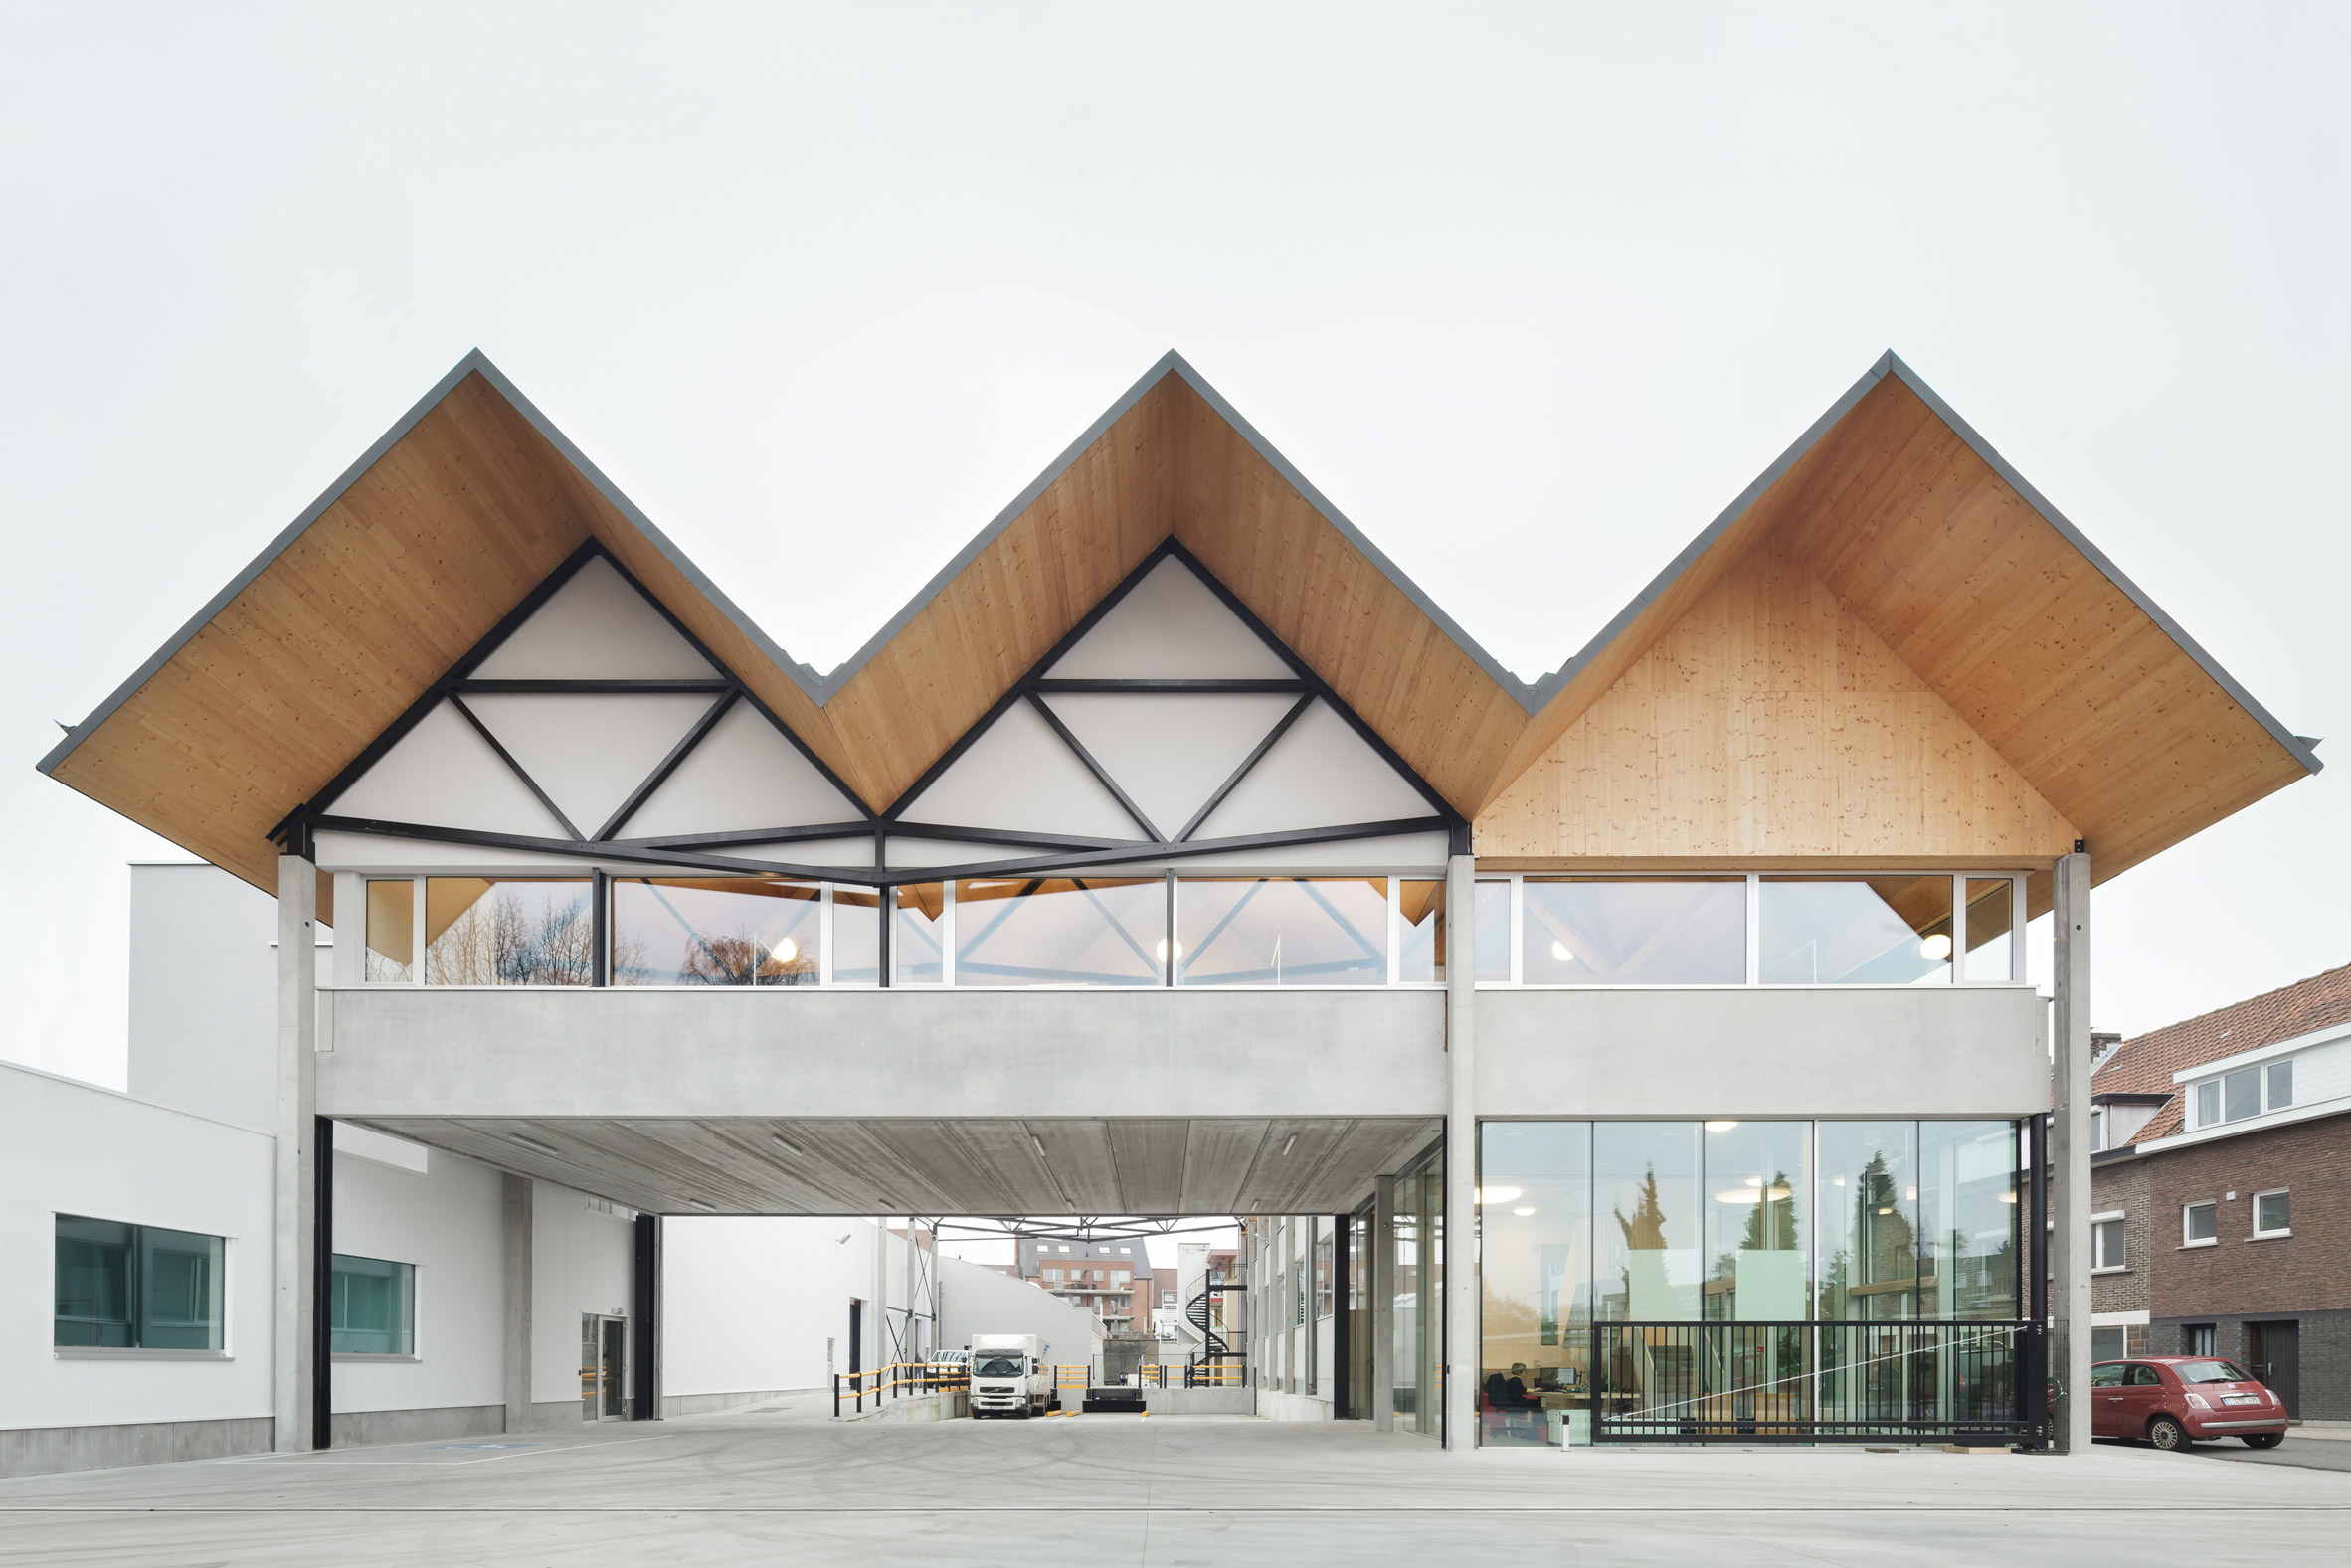 Factory with pitched roofs designed to complement terraced housing